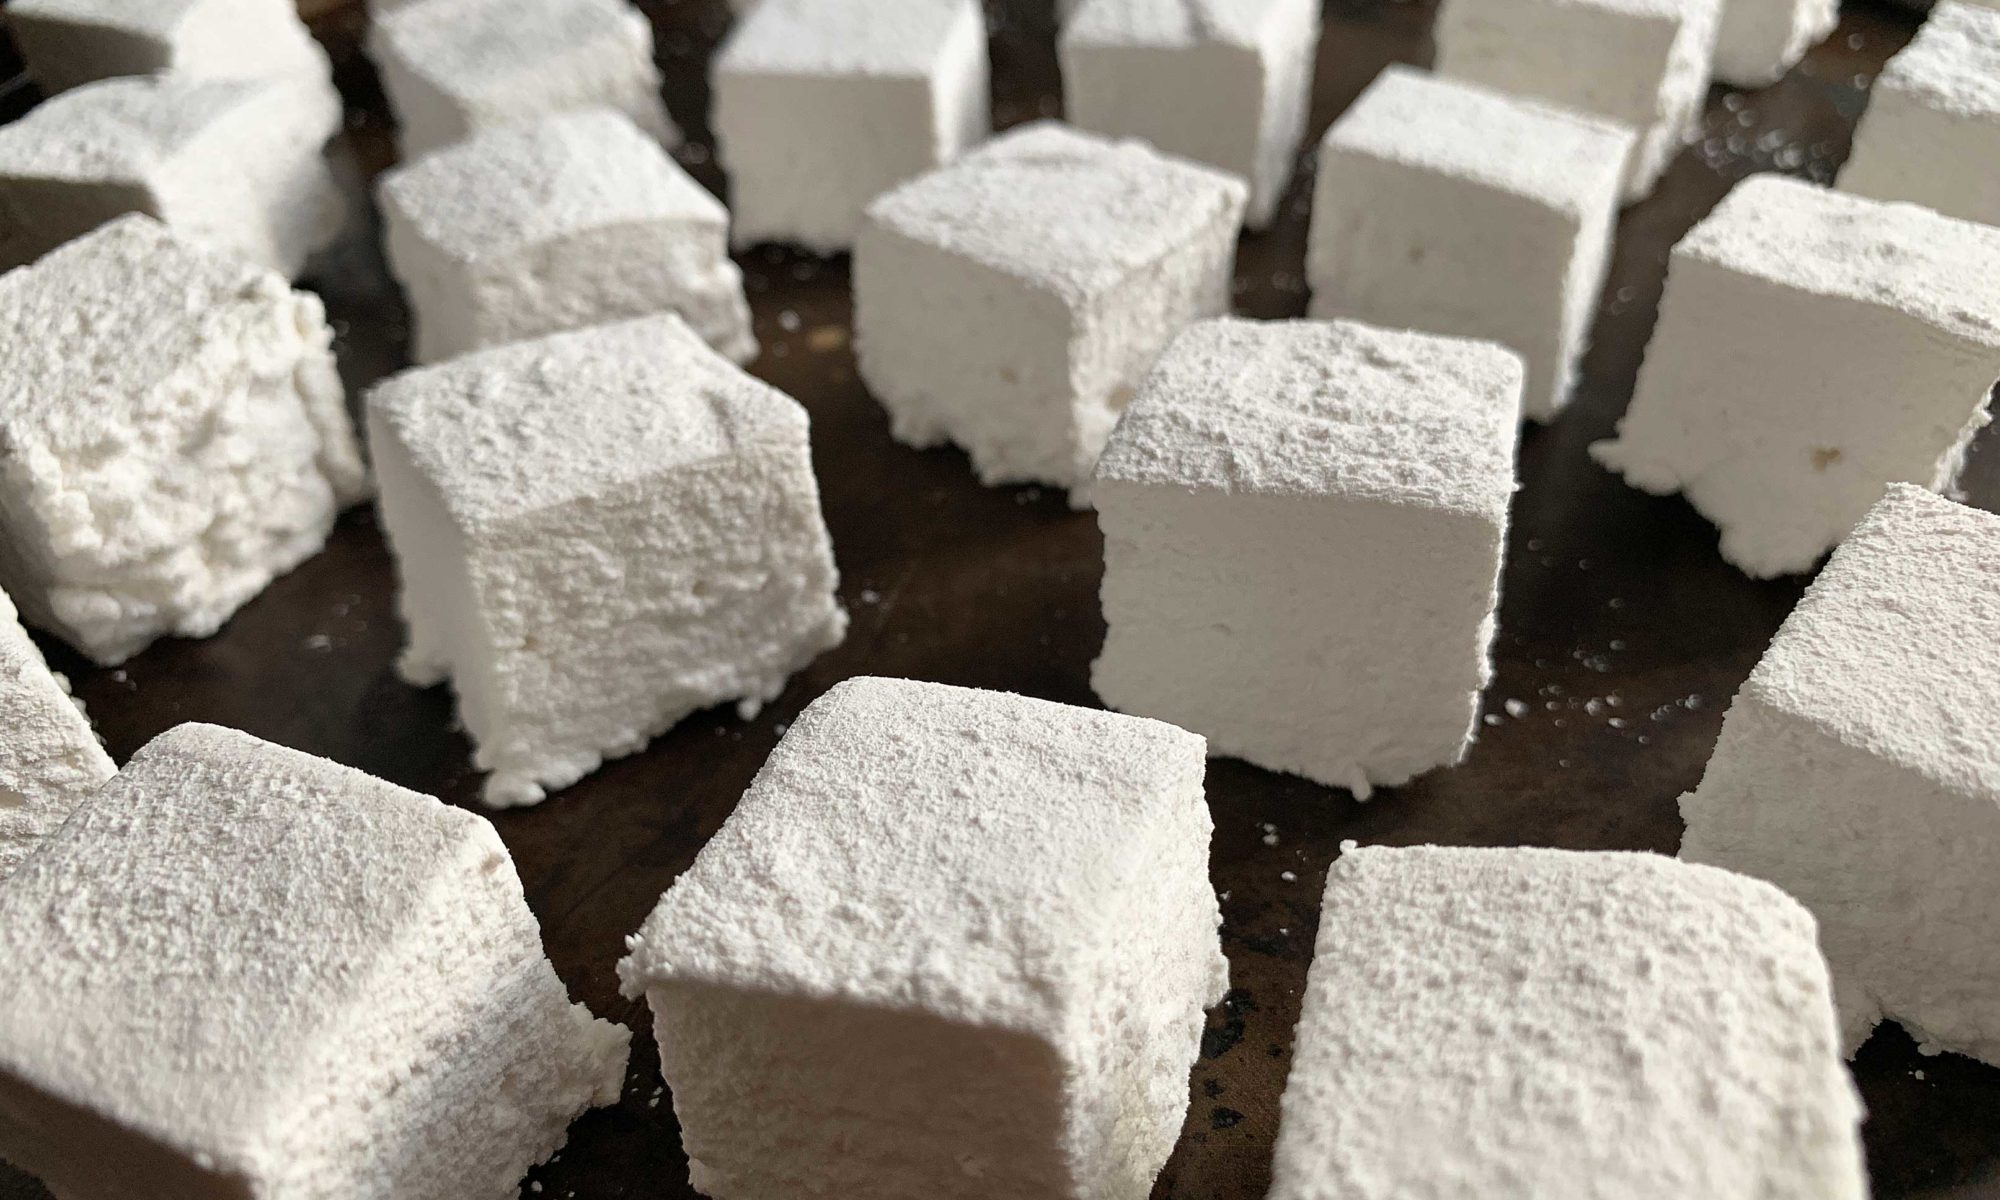 Close up shot of a pan full of homemade marshmallows, cut into cubes